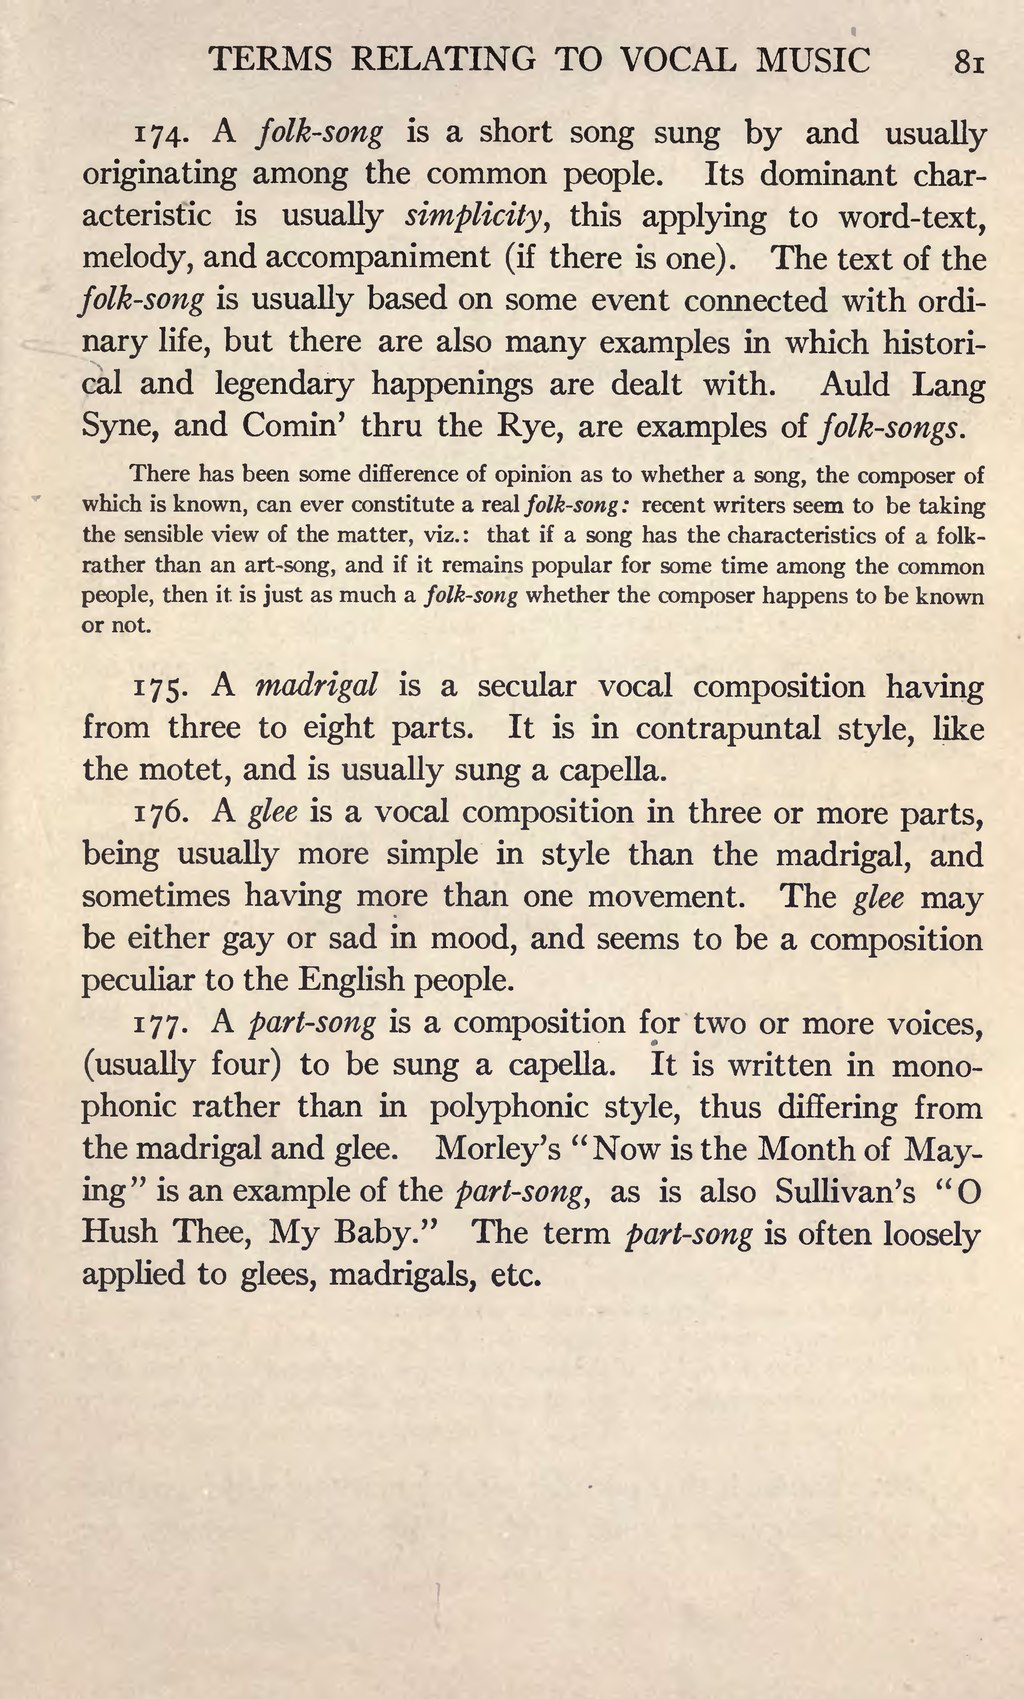 Page Music Notation And Terminology 1921 Djvu 97 Wikisource The